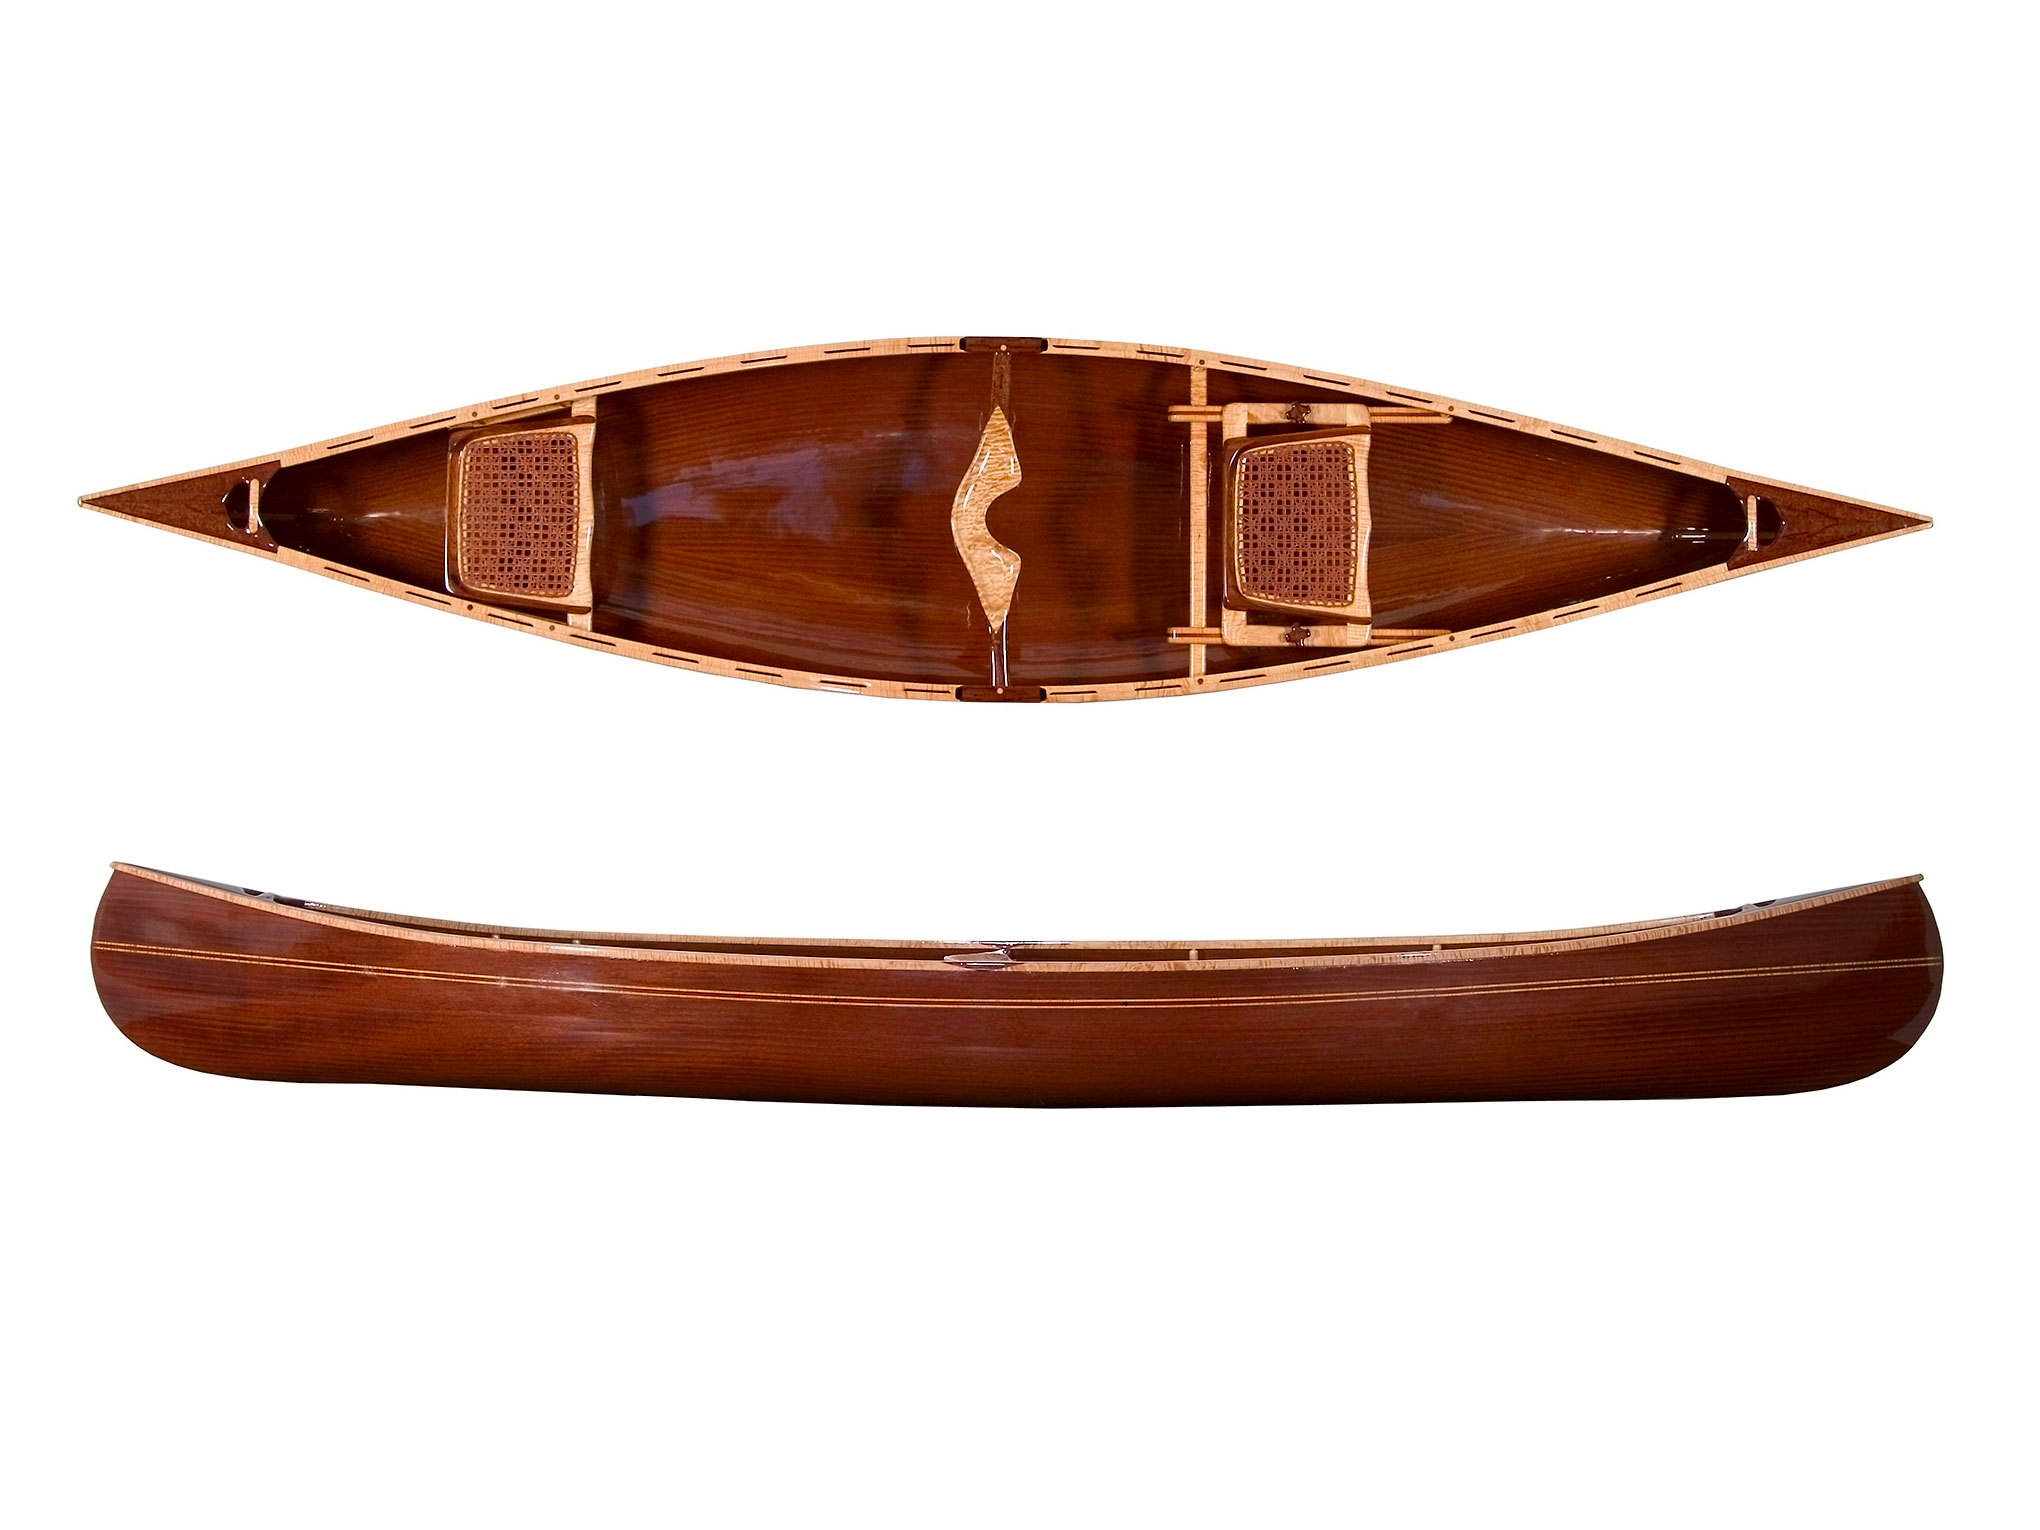 Mahogany Canoe By Sue Spray DVM